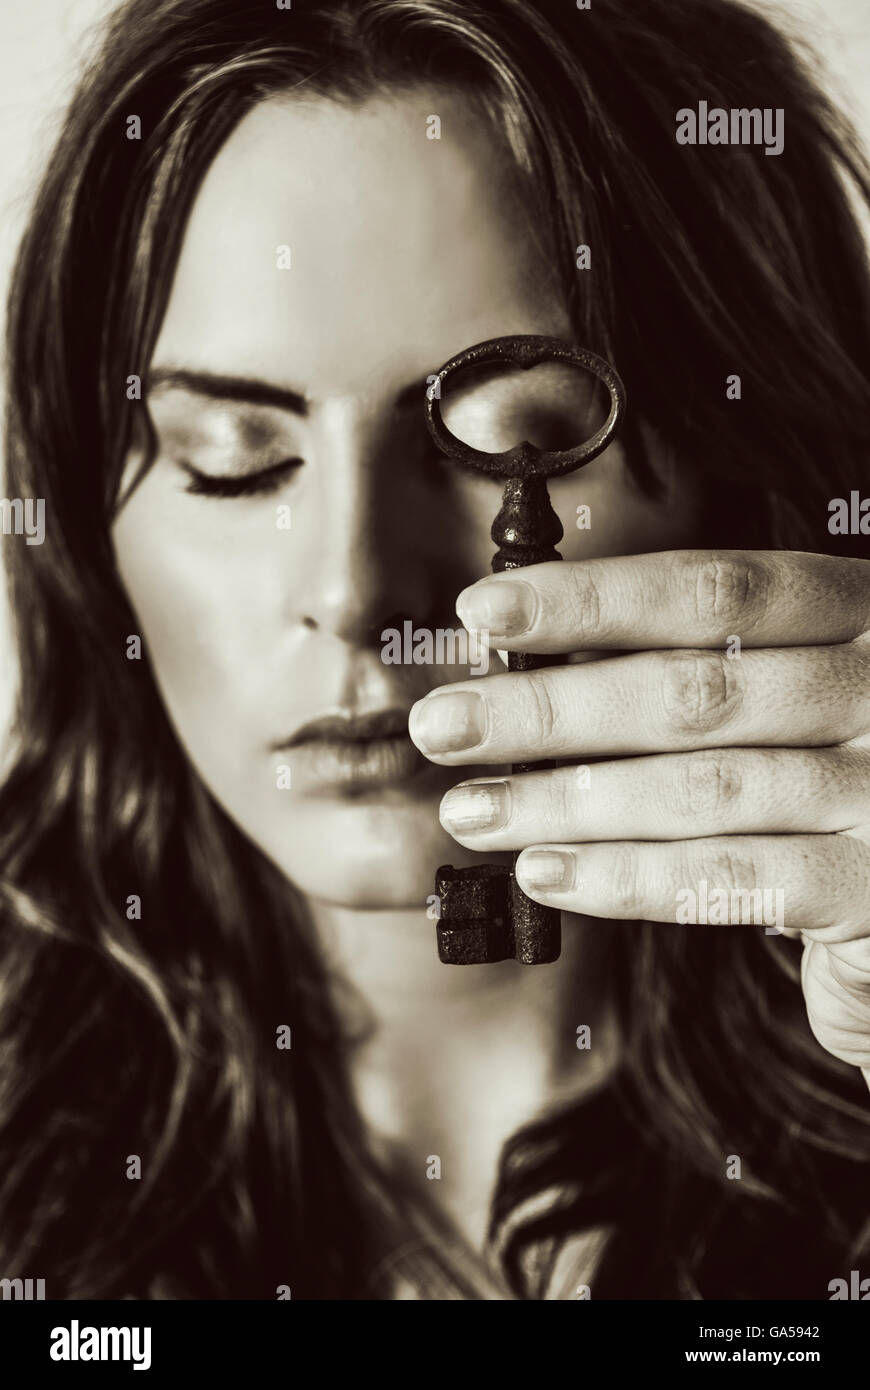 Close up of a sad woman holding a vintage key - Stock Image